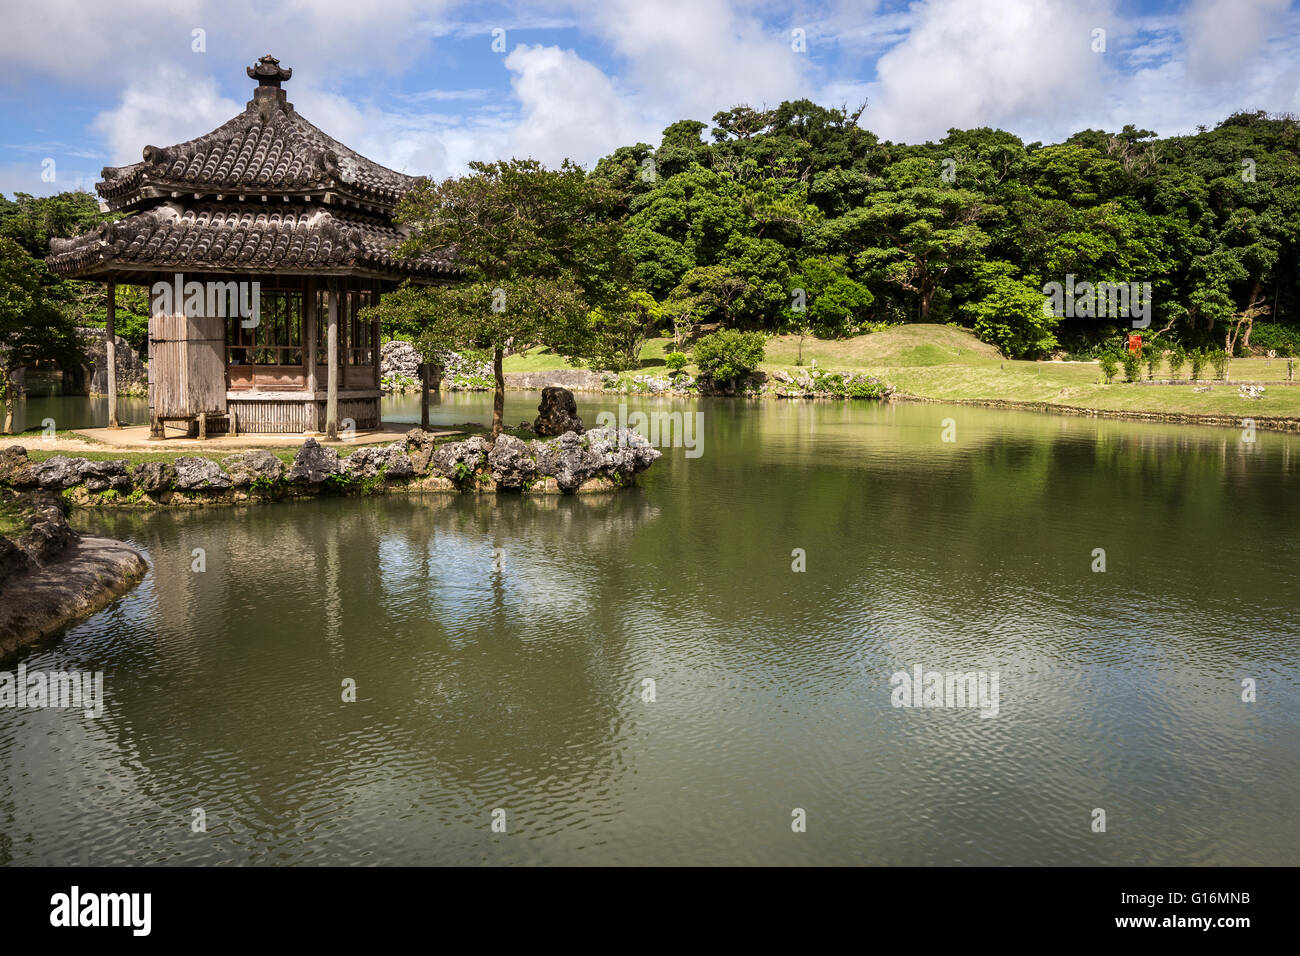 Shikinaen Garden and Palace were constructed at the end of the 18th century as a second home for the royal family - Stock Image